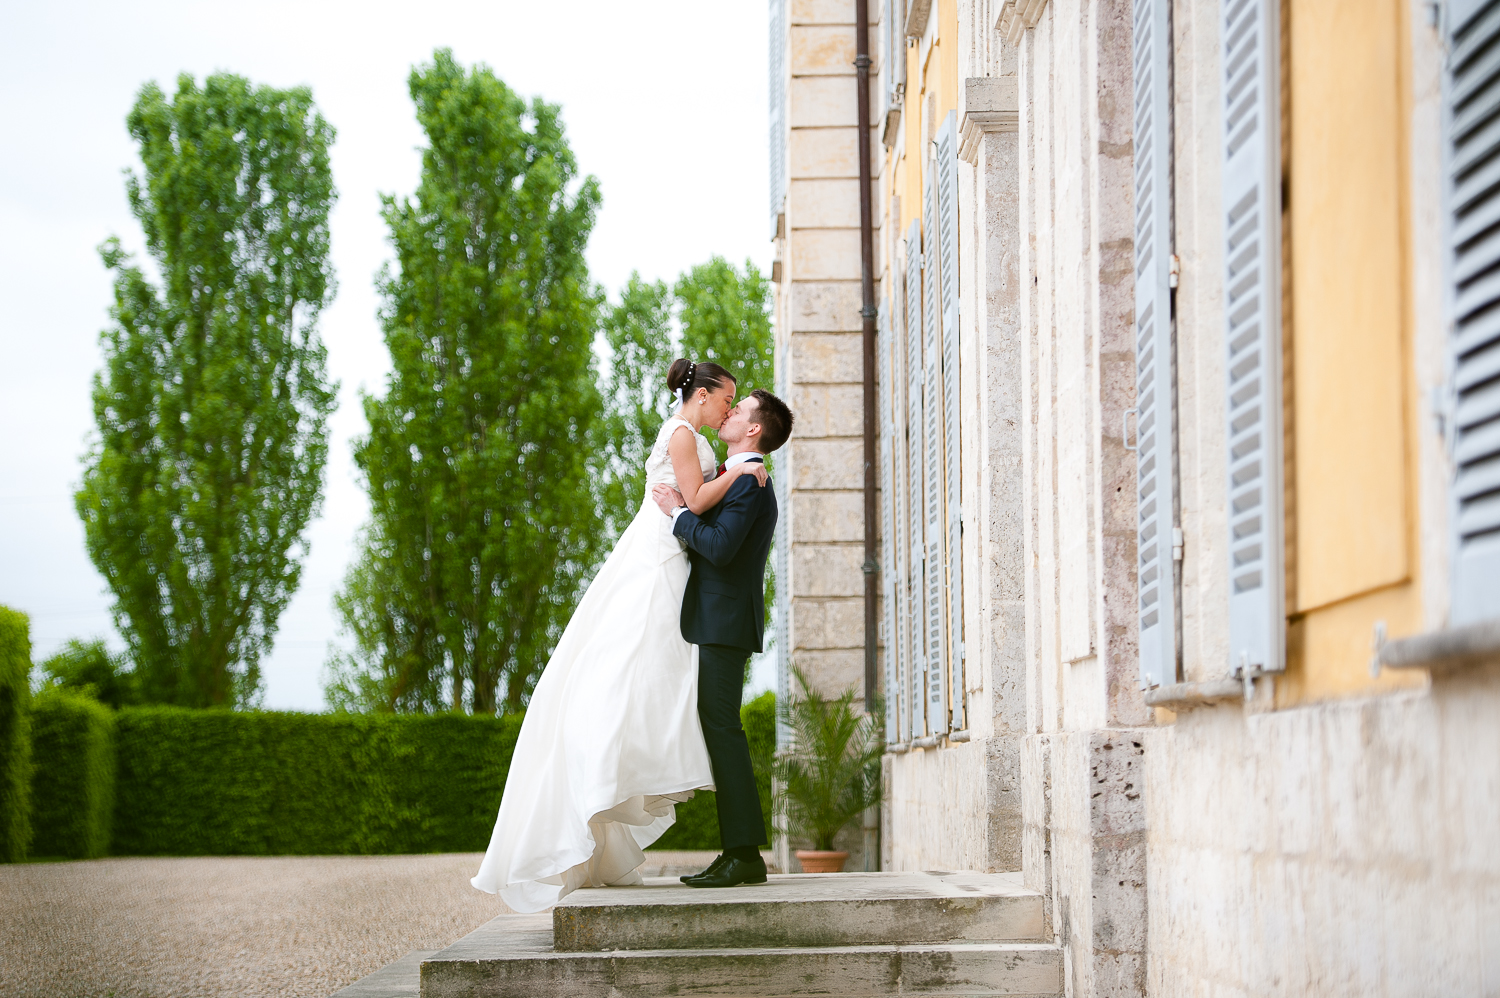 photographe mariage chateau dommerville